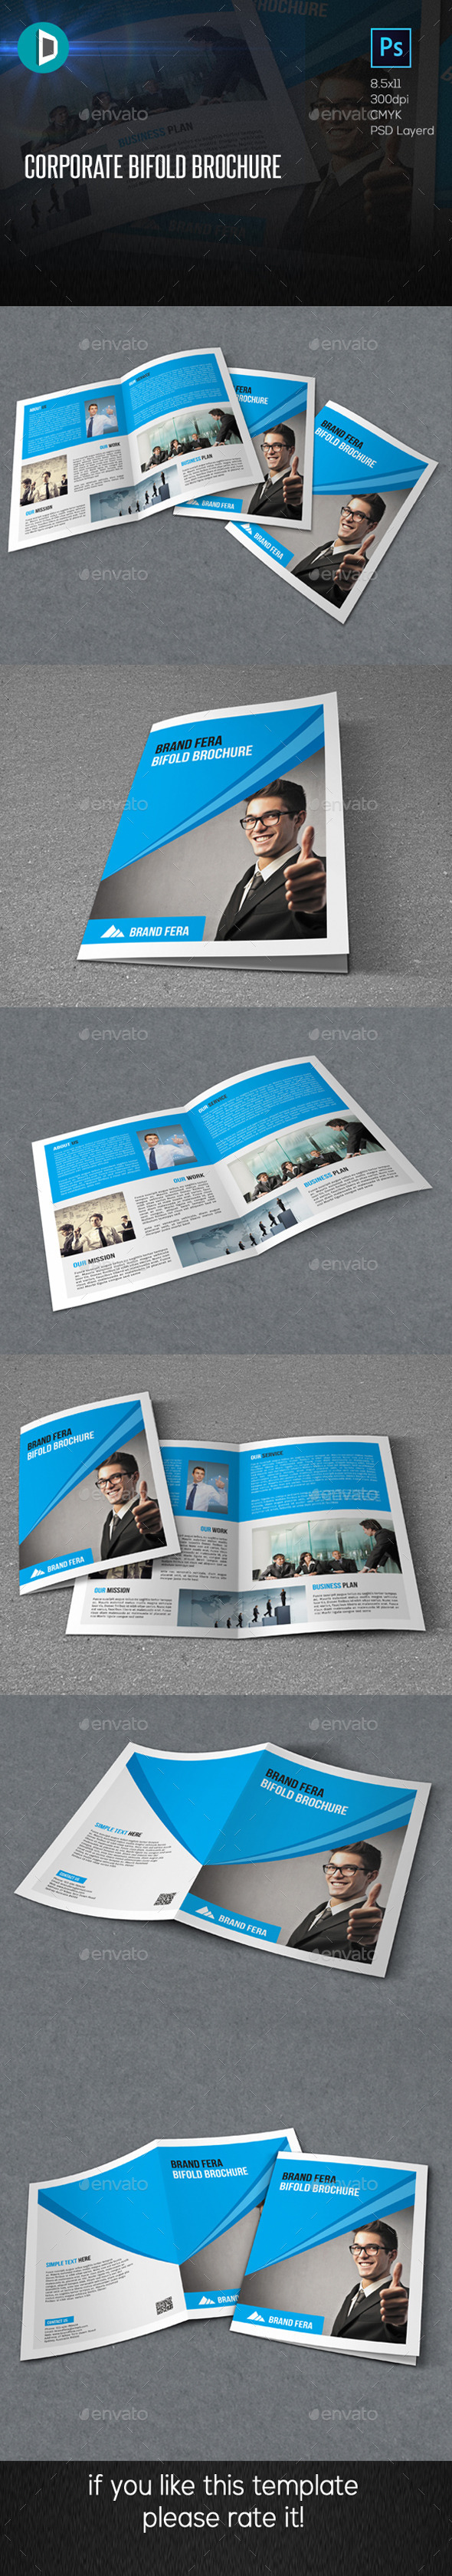 Corporate Bifold Brochure - Corporate Brochures